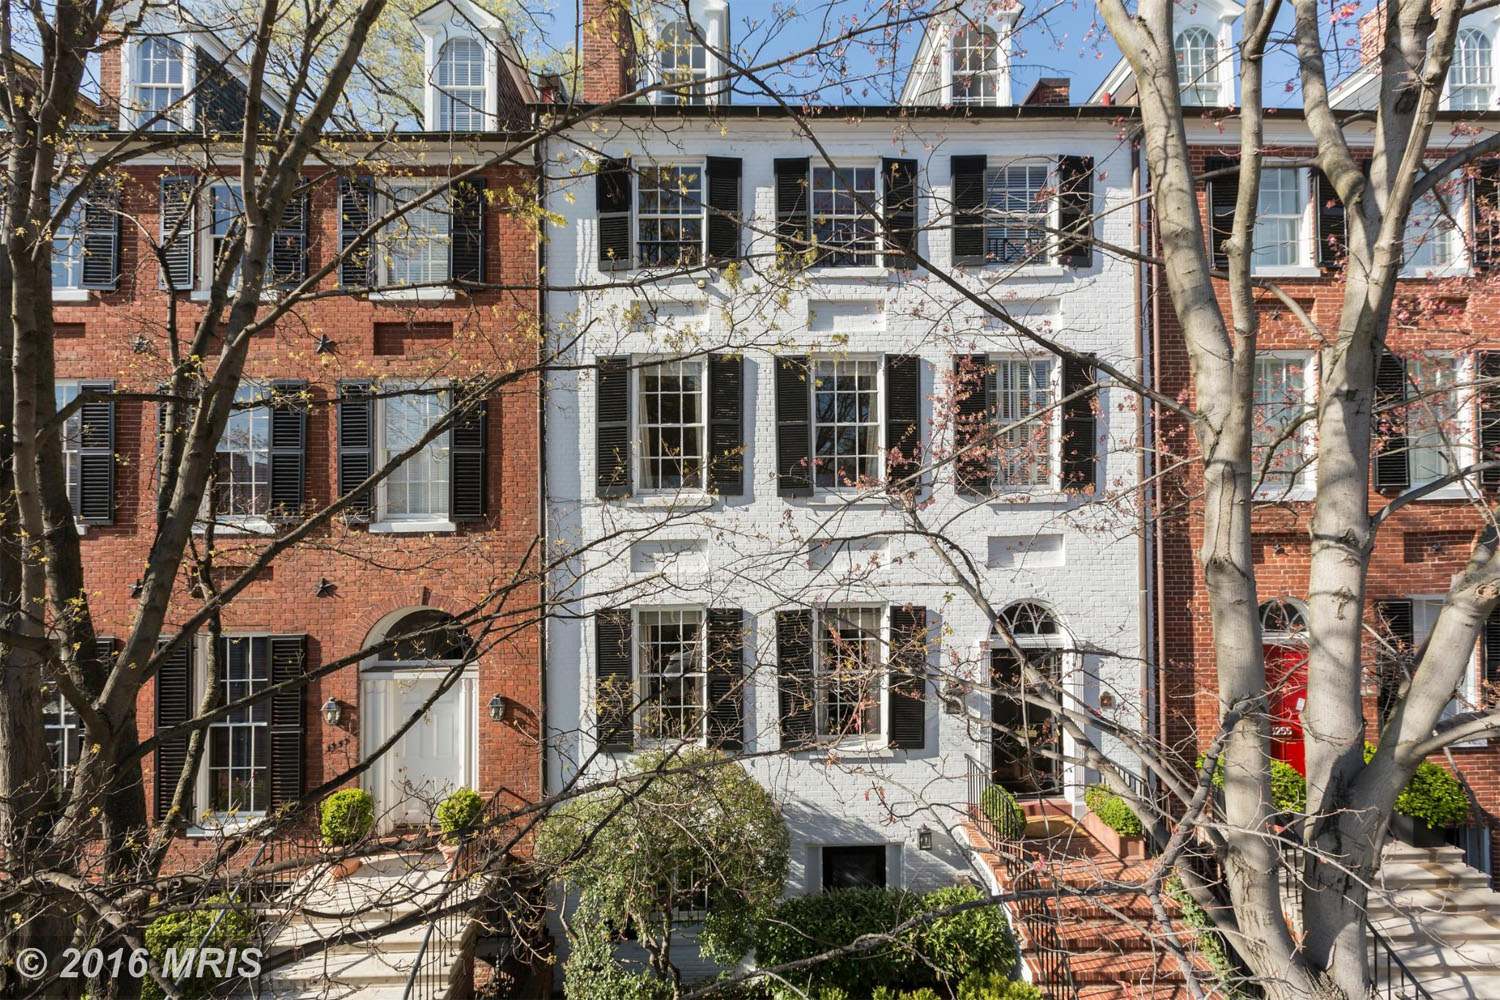 $4,925,000  3257 N St. NW Washington, D.C.   Located in Georgetown, this Federal-style row-house, sold for $4.9 million. The home, originally built in 1812, boasts six bedrooms and five bathrooms. (MRIS)